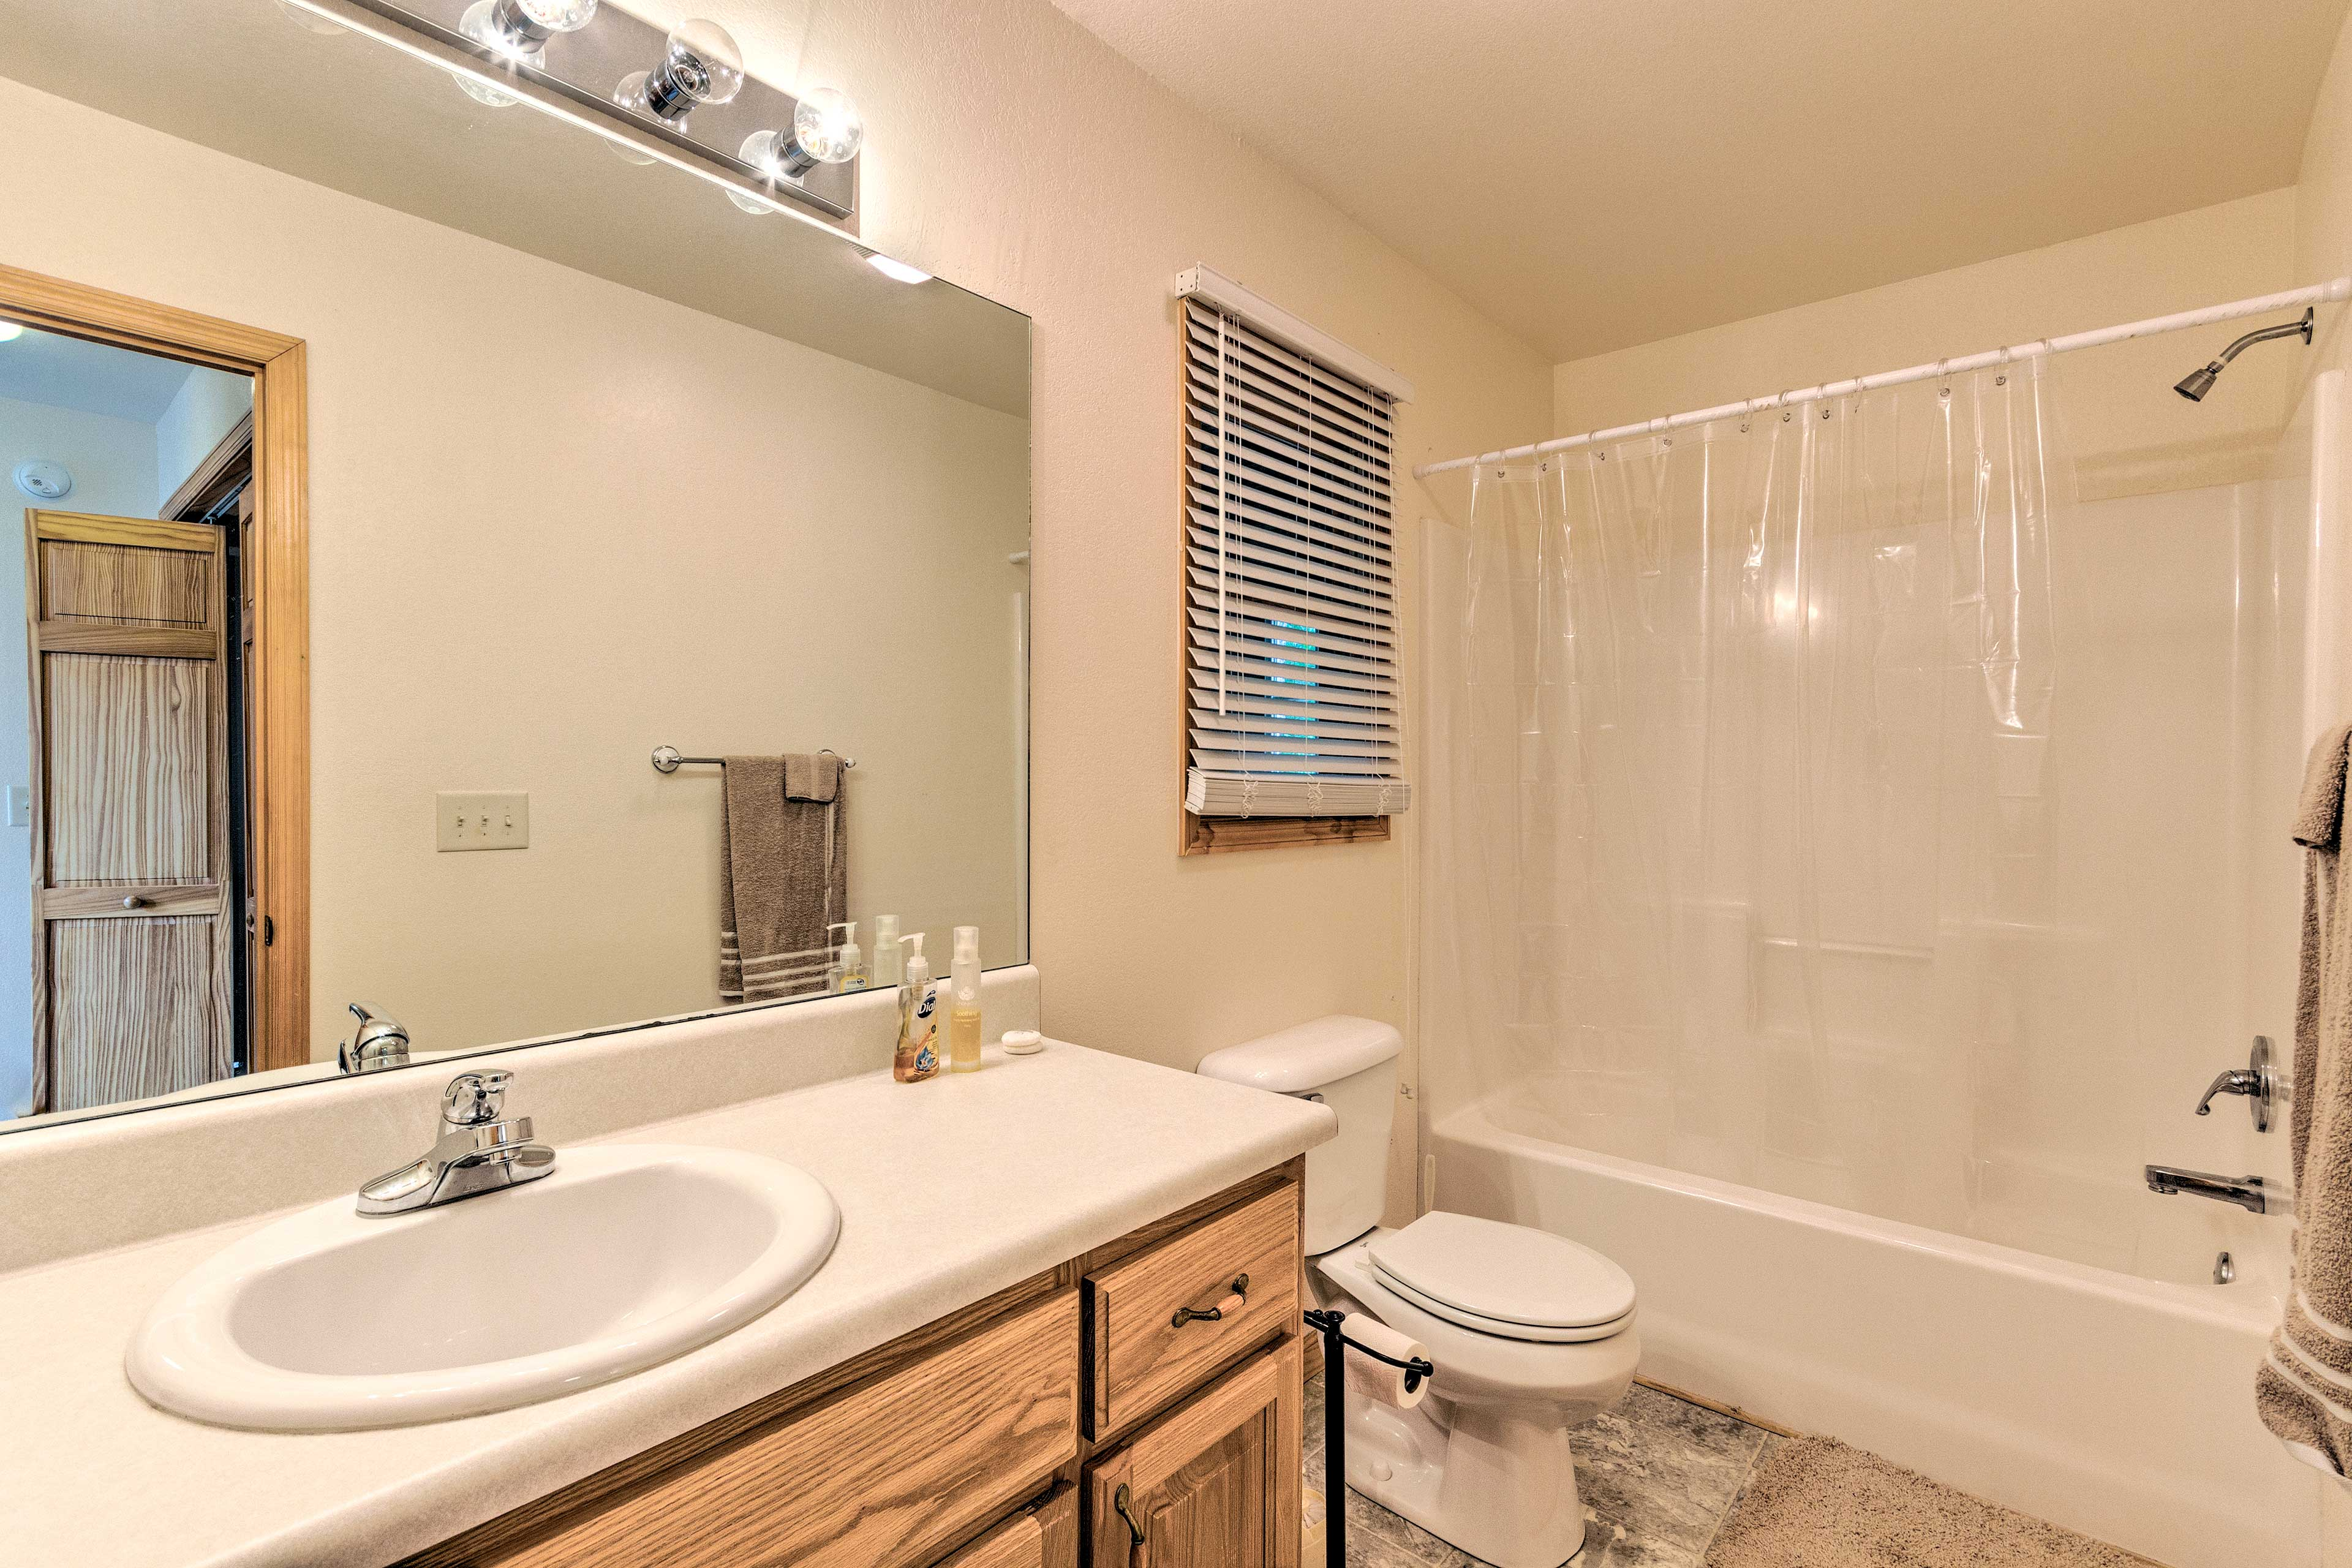 The home comes with 2 full baths, both with plenty of lighting and cabinetry!